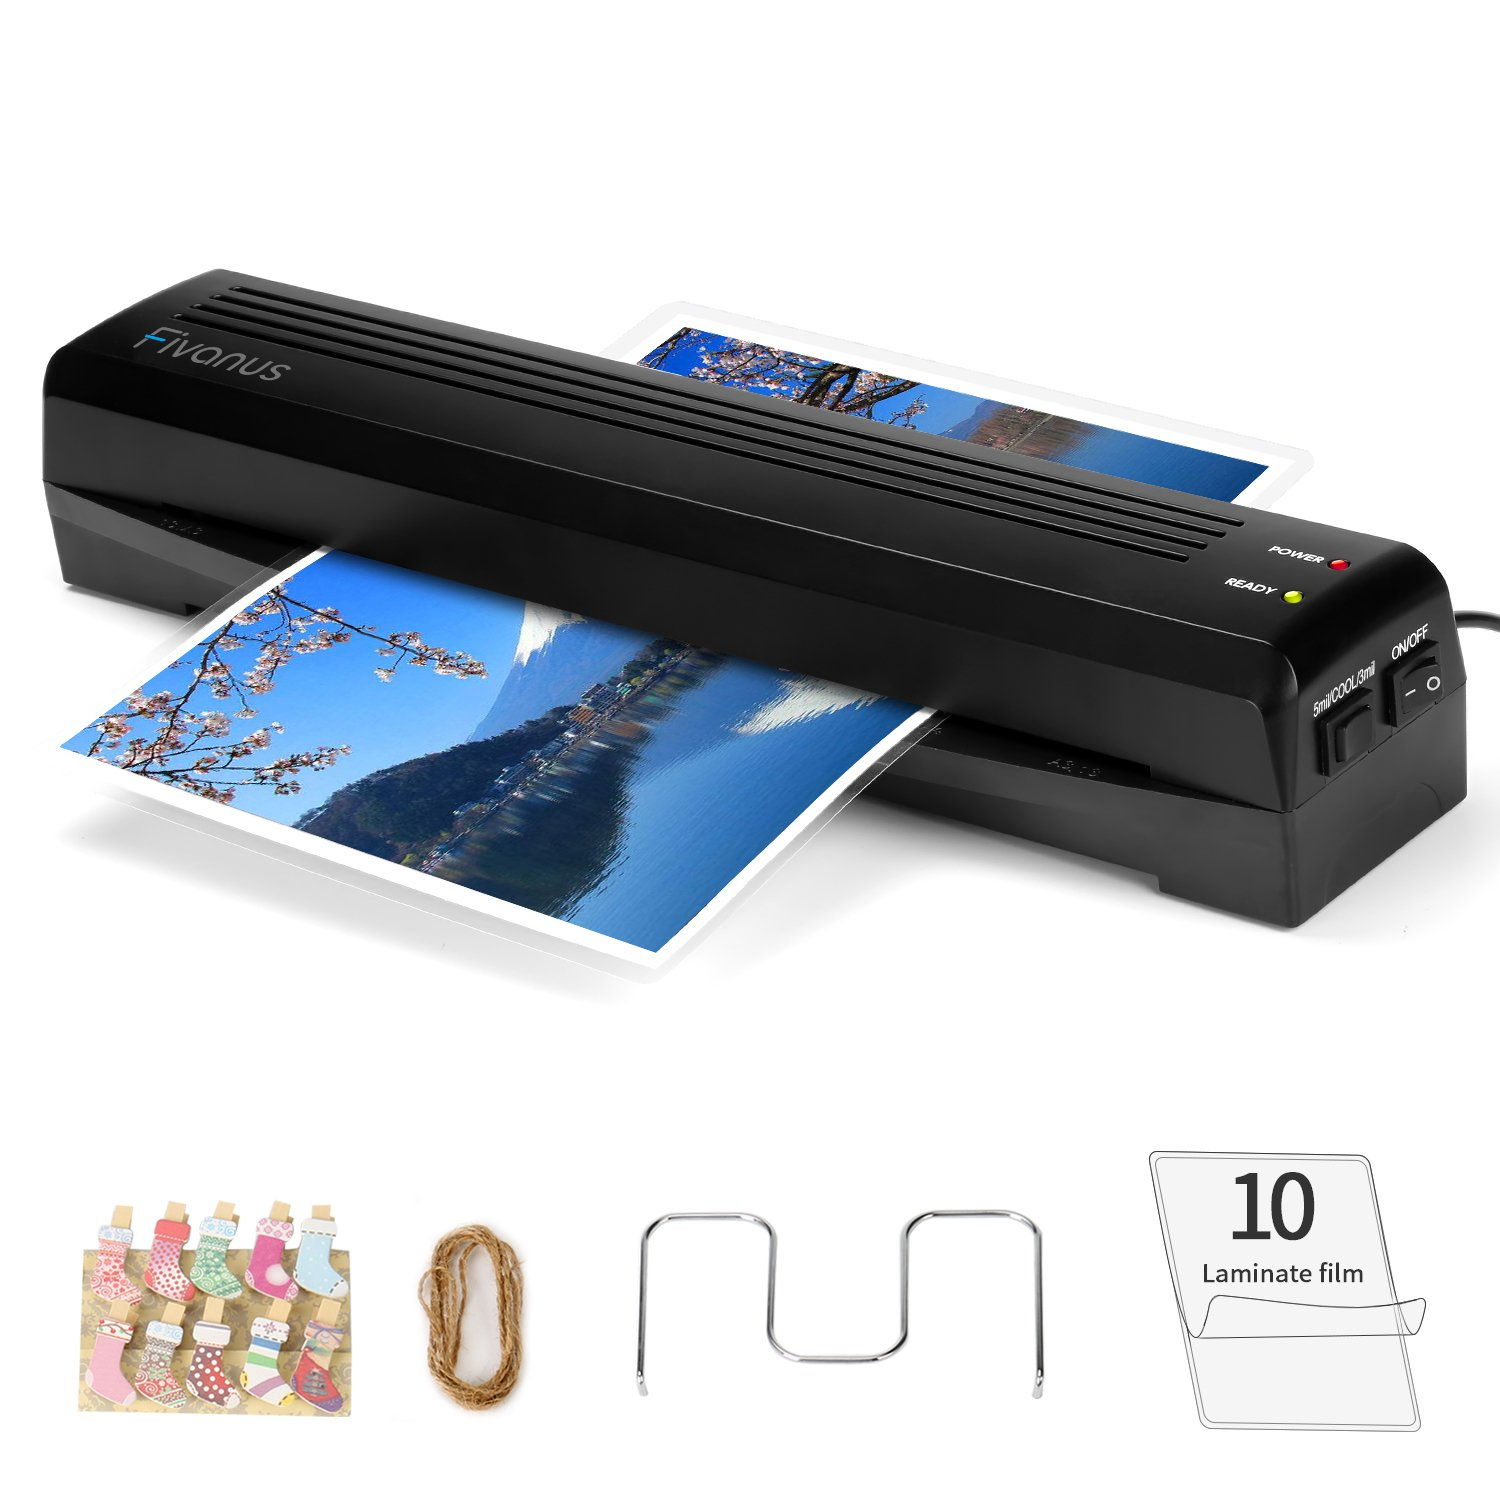 Fivanus Thermal Laminator A3 A4 A6 Lamination Machine 2 Rollers Quick Warm-up Laminating Speed, Jam Release Switch and Automatic Shut Off Function for Home, Office and School